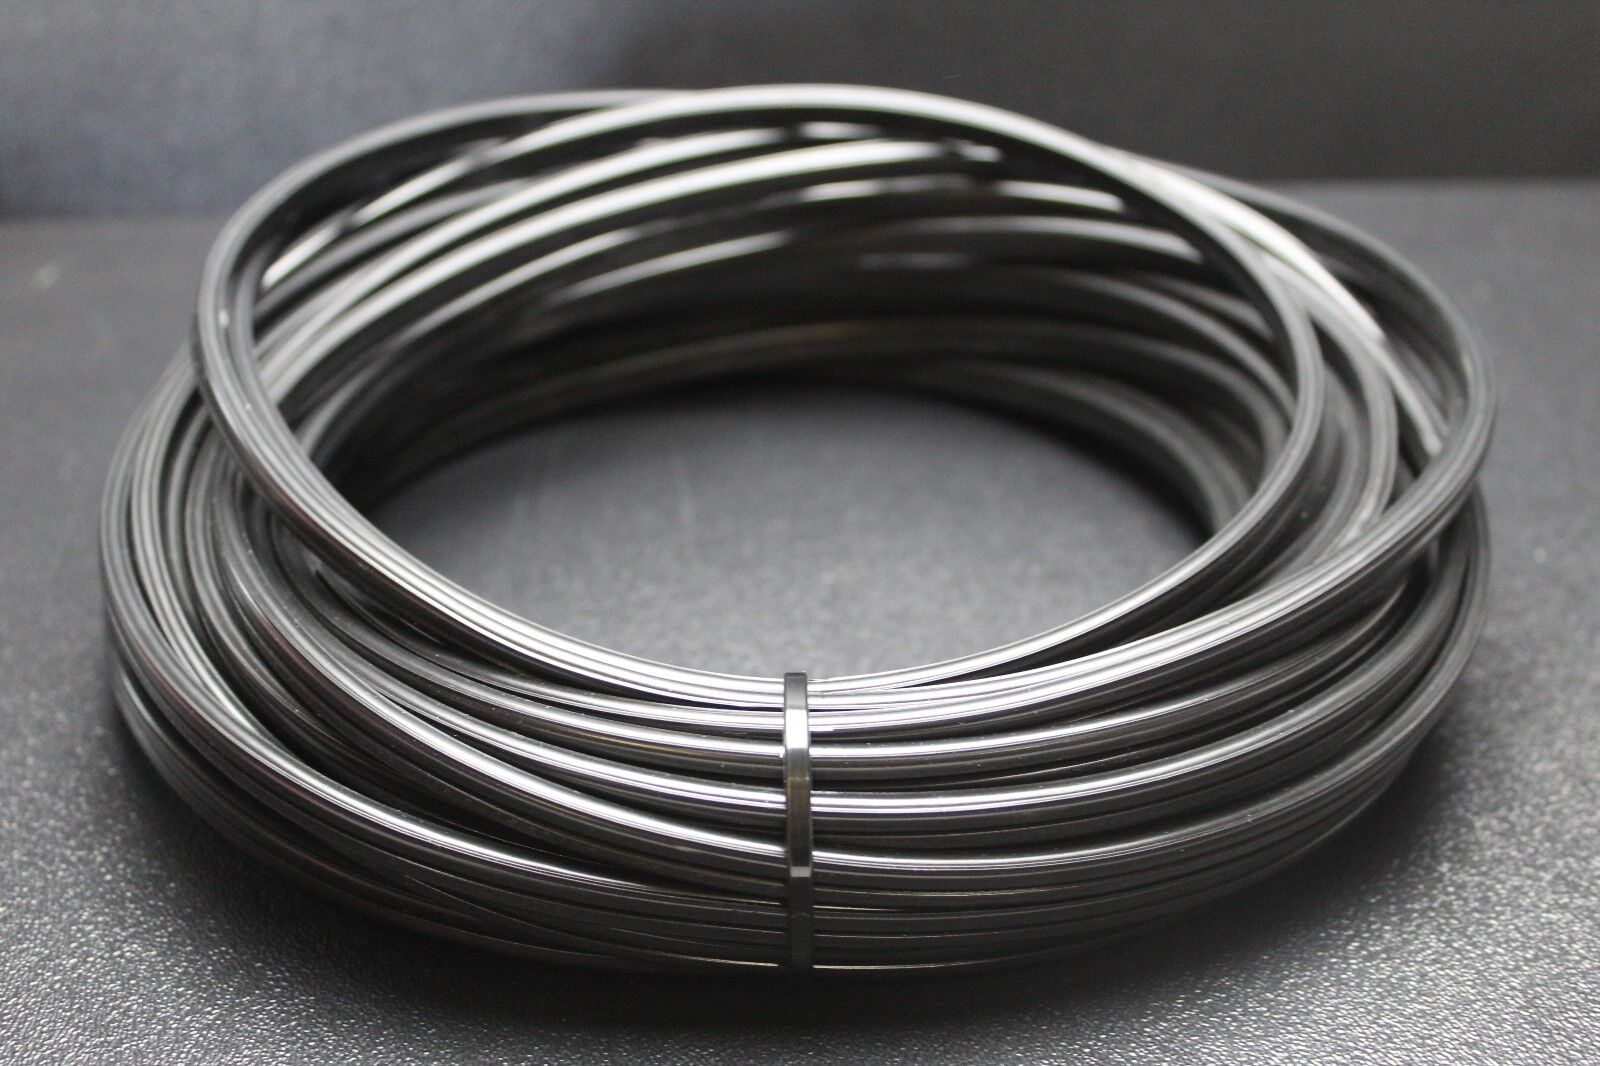 LANDSCAPE WIRE 5 FT SOUTHWIRE 14/2 BLACK STRANDED 100% COPPE